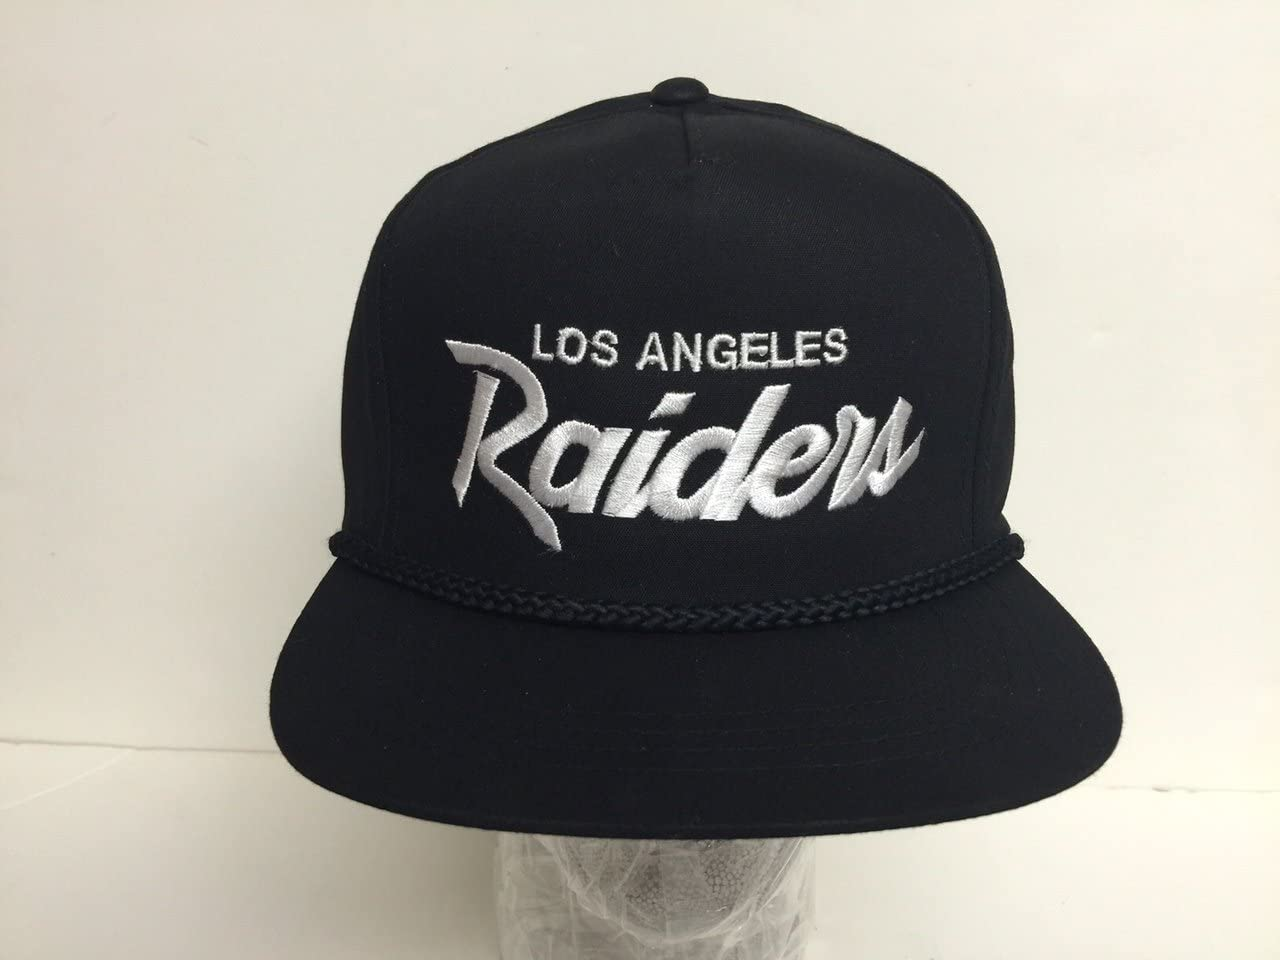 Vintage réplica Gorra de los Angeles Raiders: Amazon.es: Deportes ...